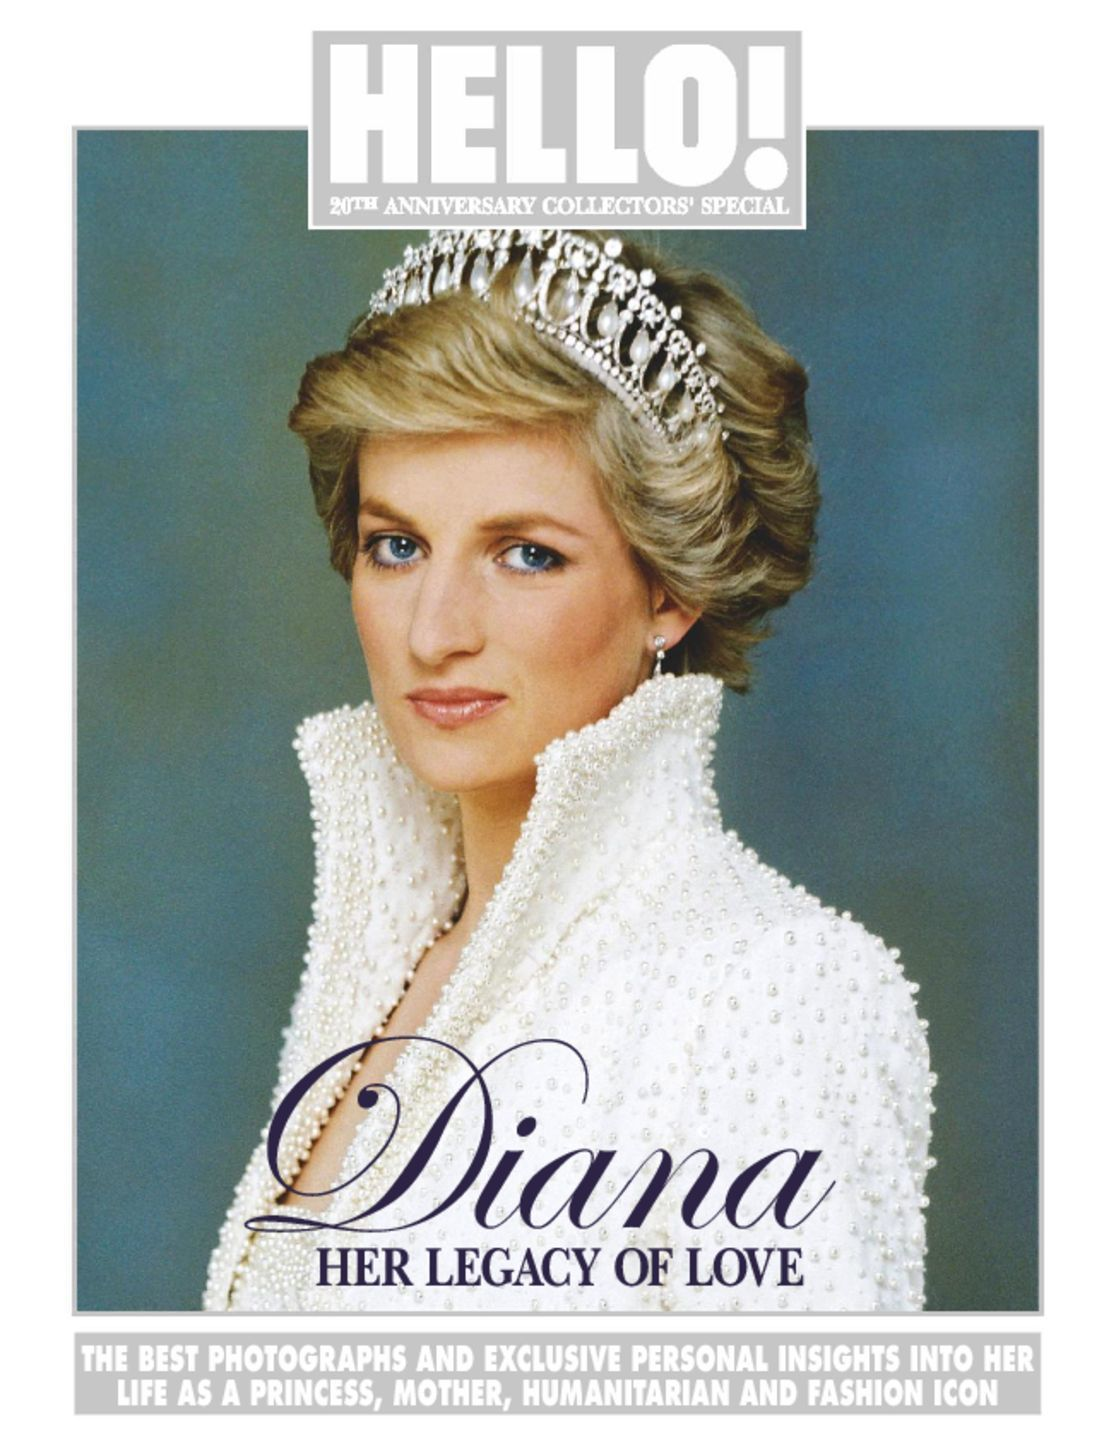 Diana Her Legacy of Love Digital